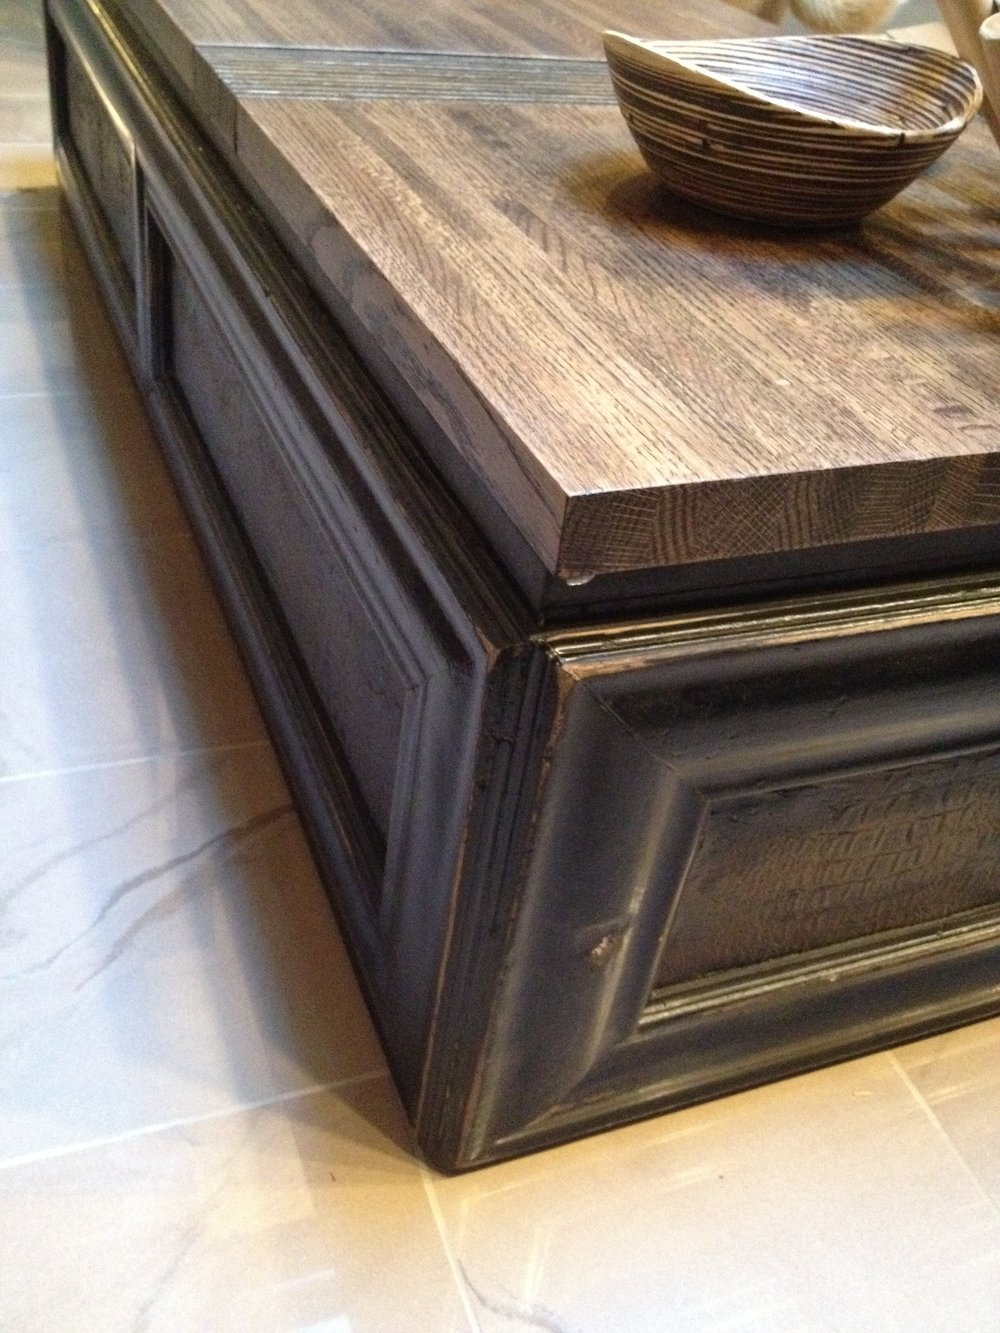 Vintage chest gets a new life as a coffee table.